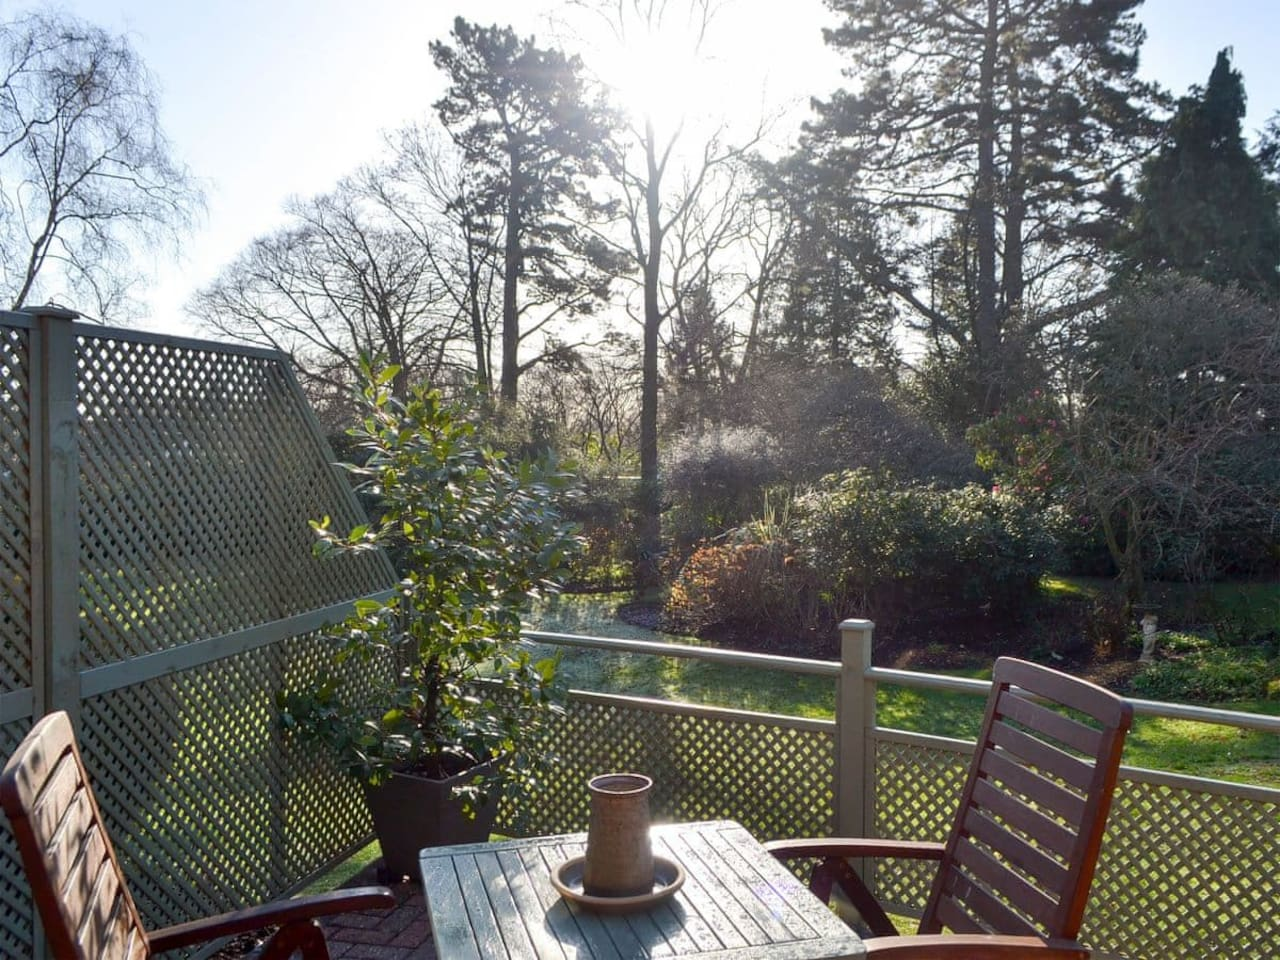 Alices Lodge (UK10579)